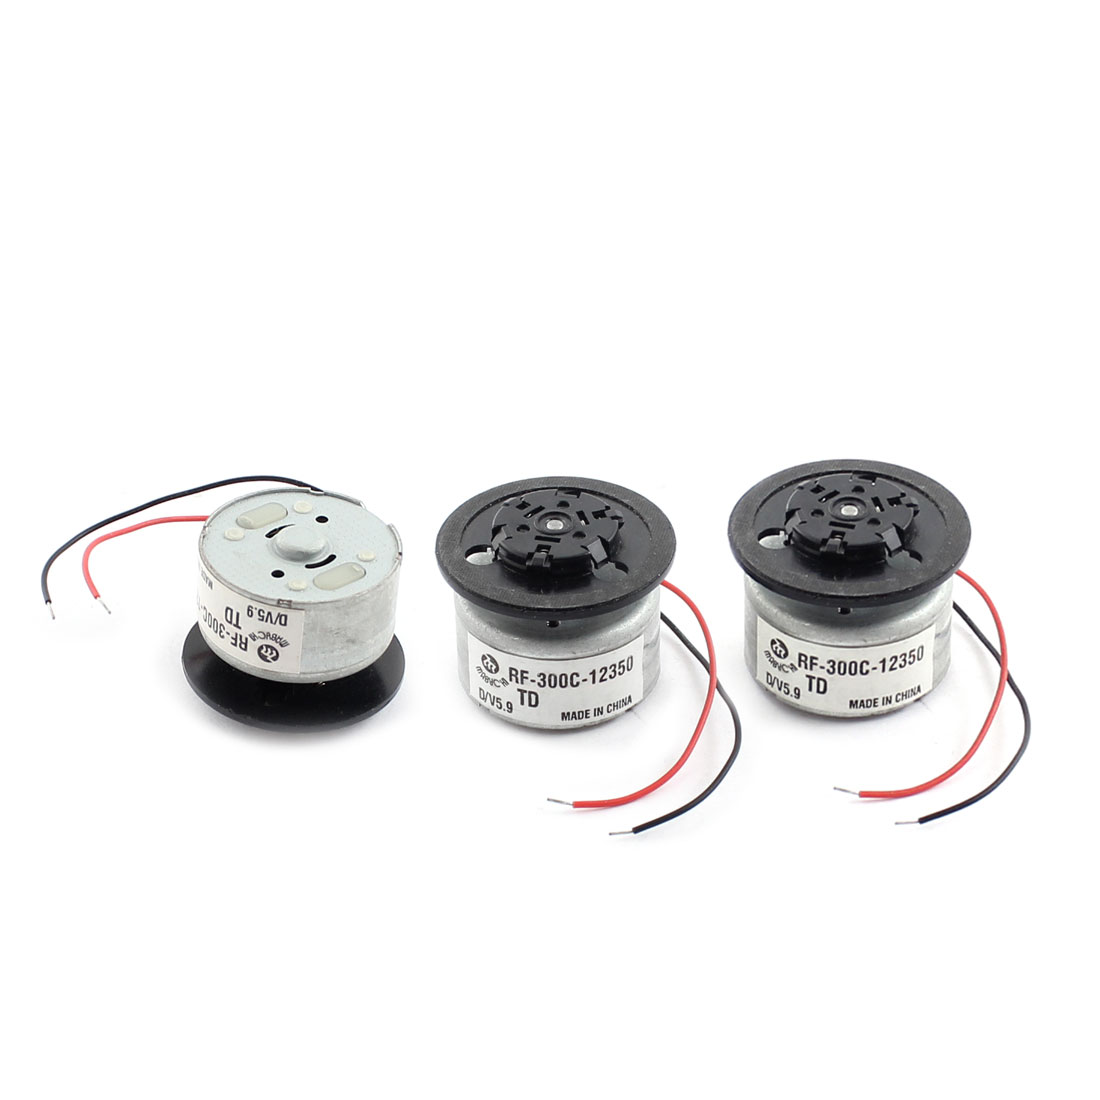 RC Helicopter Aircraft Metal Shell Micro Motor DC 5.9V 8000RPM 25mmx12mm 3 Pcs